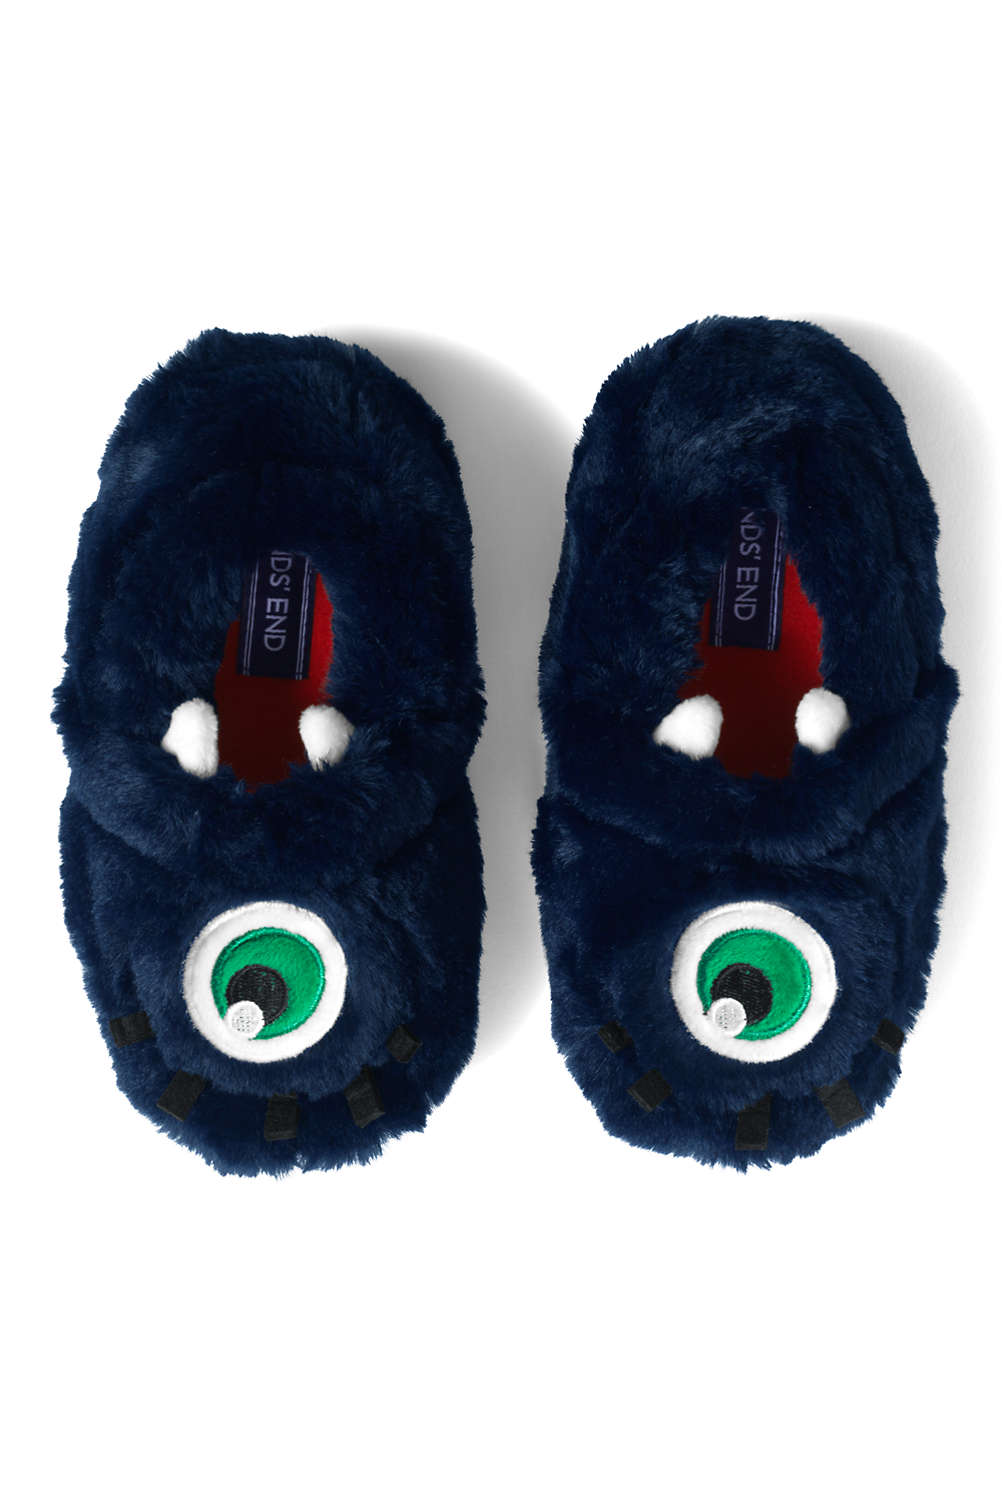 caaa249c1 Toddlers Cute Animal Fleece Slippers from Lands  End